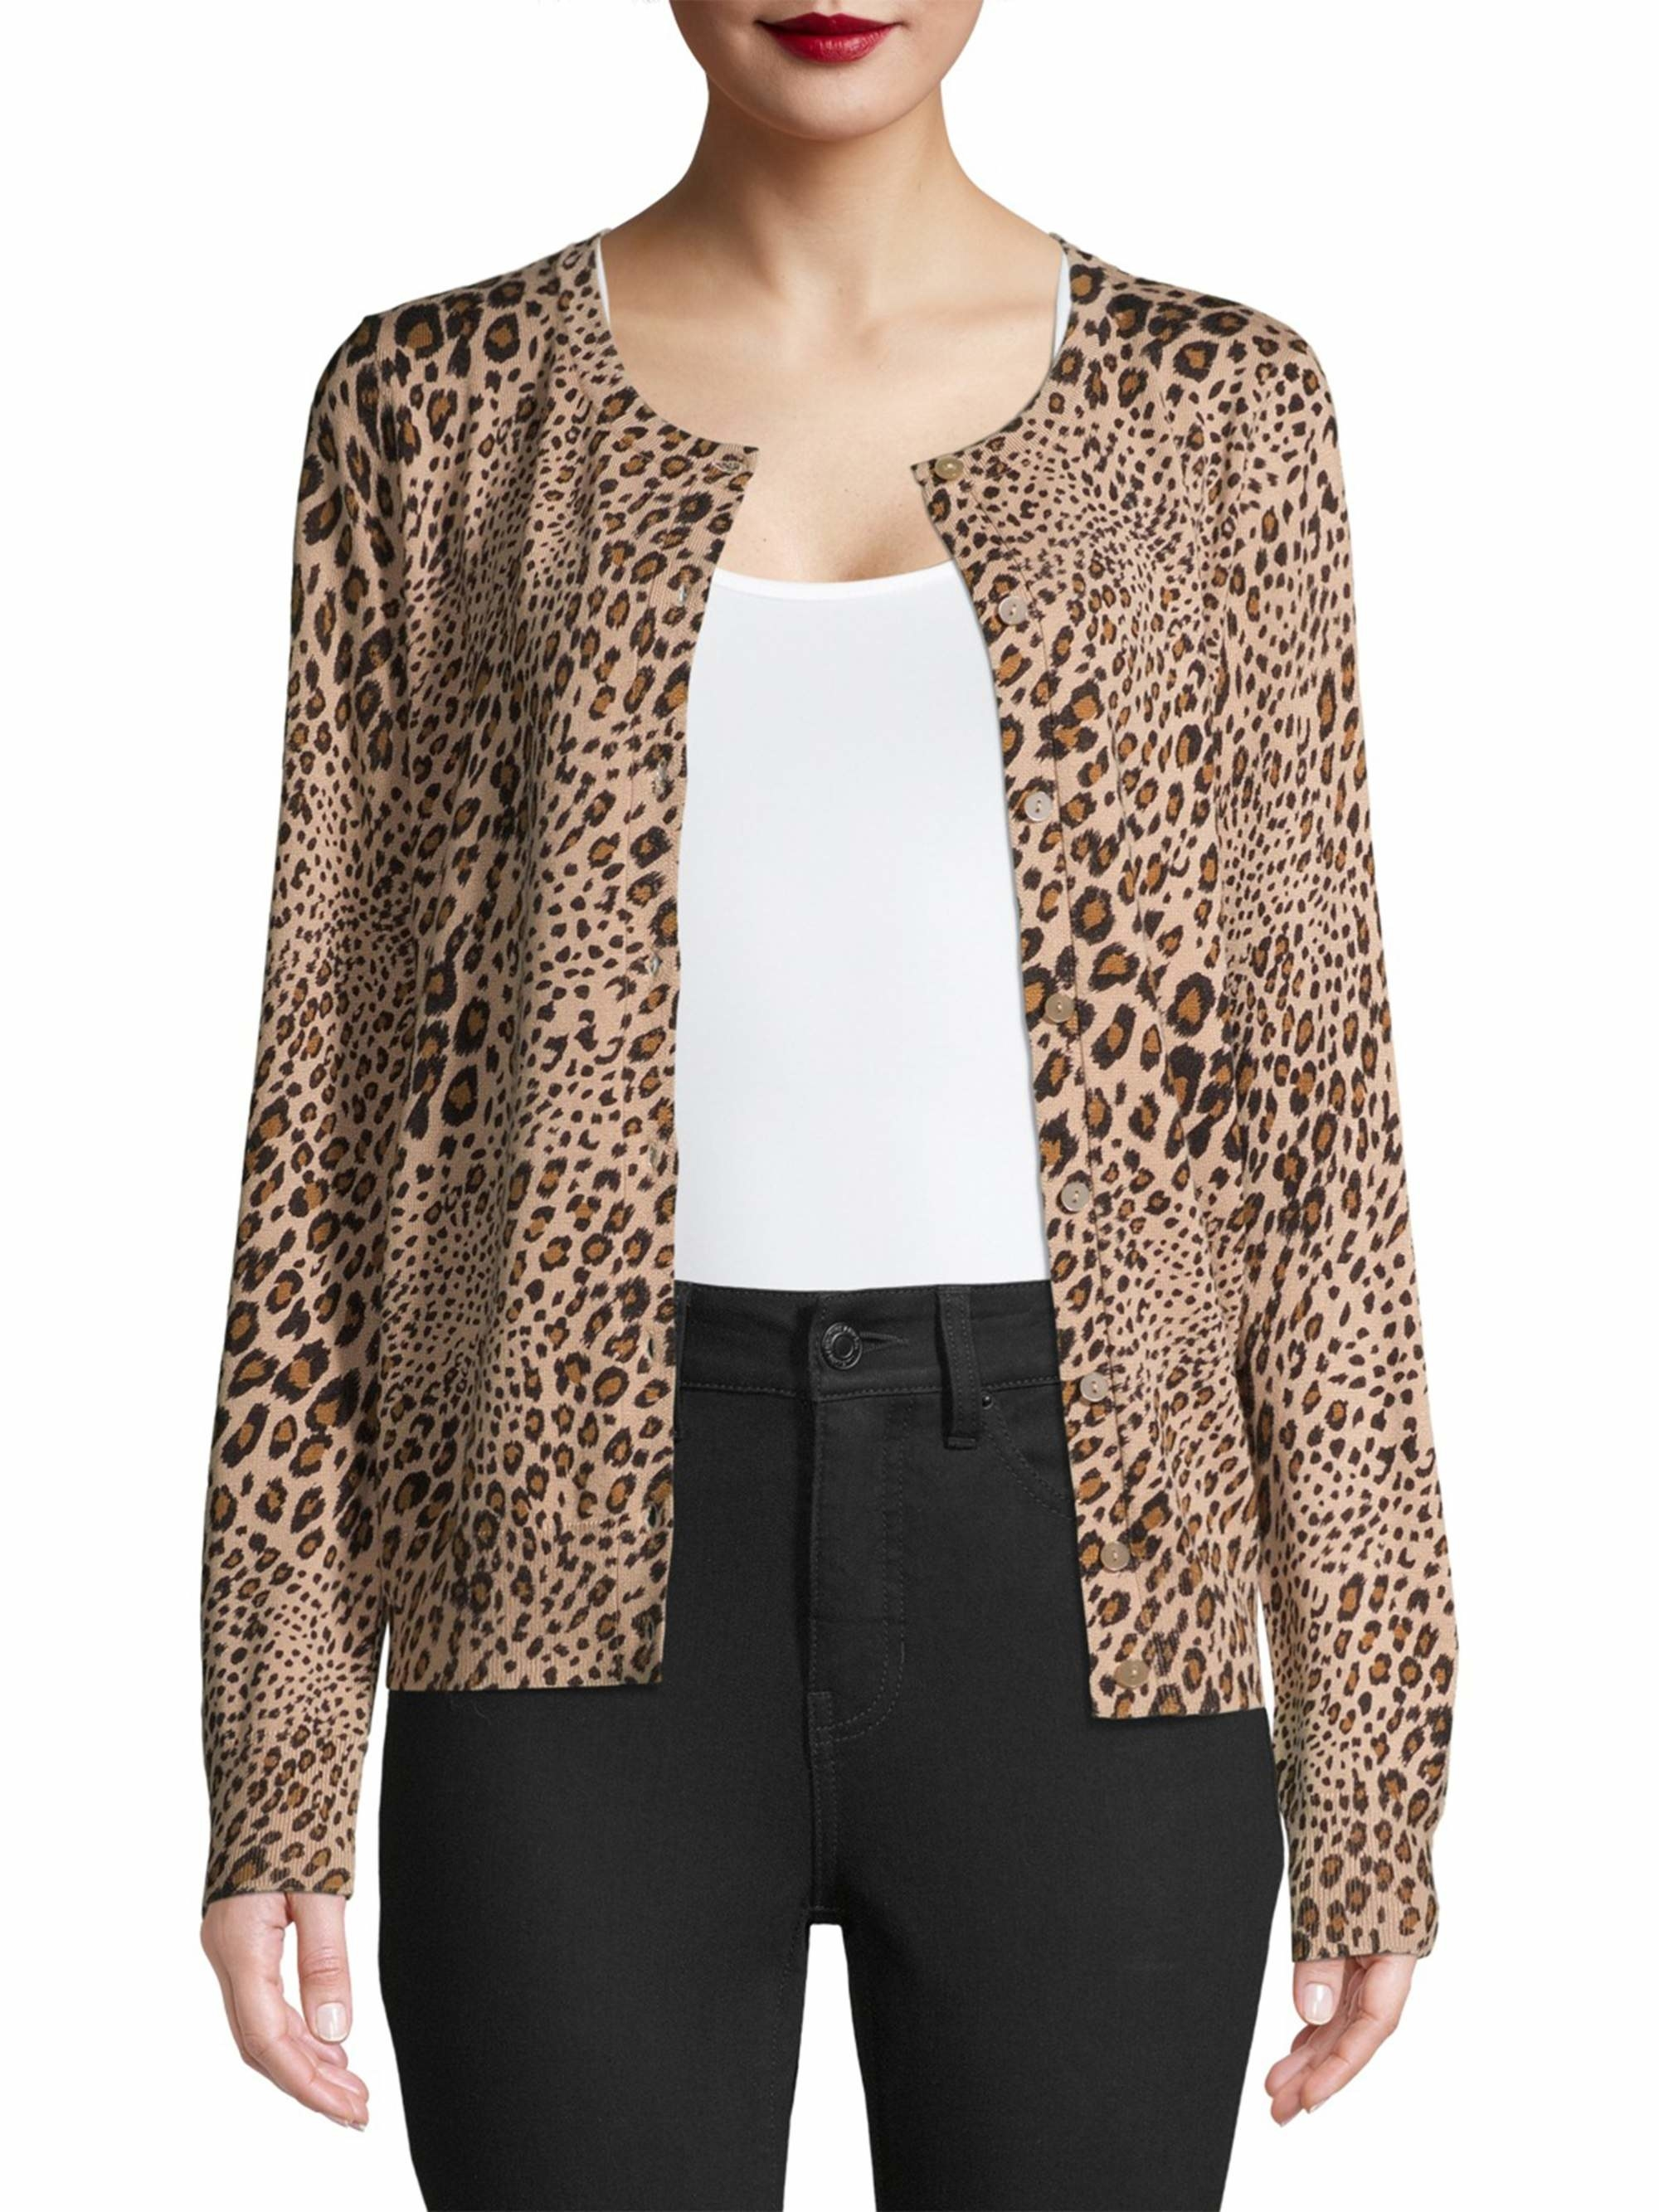 Model wearing leopard print cardigan.